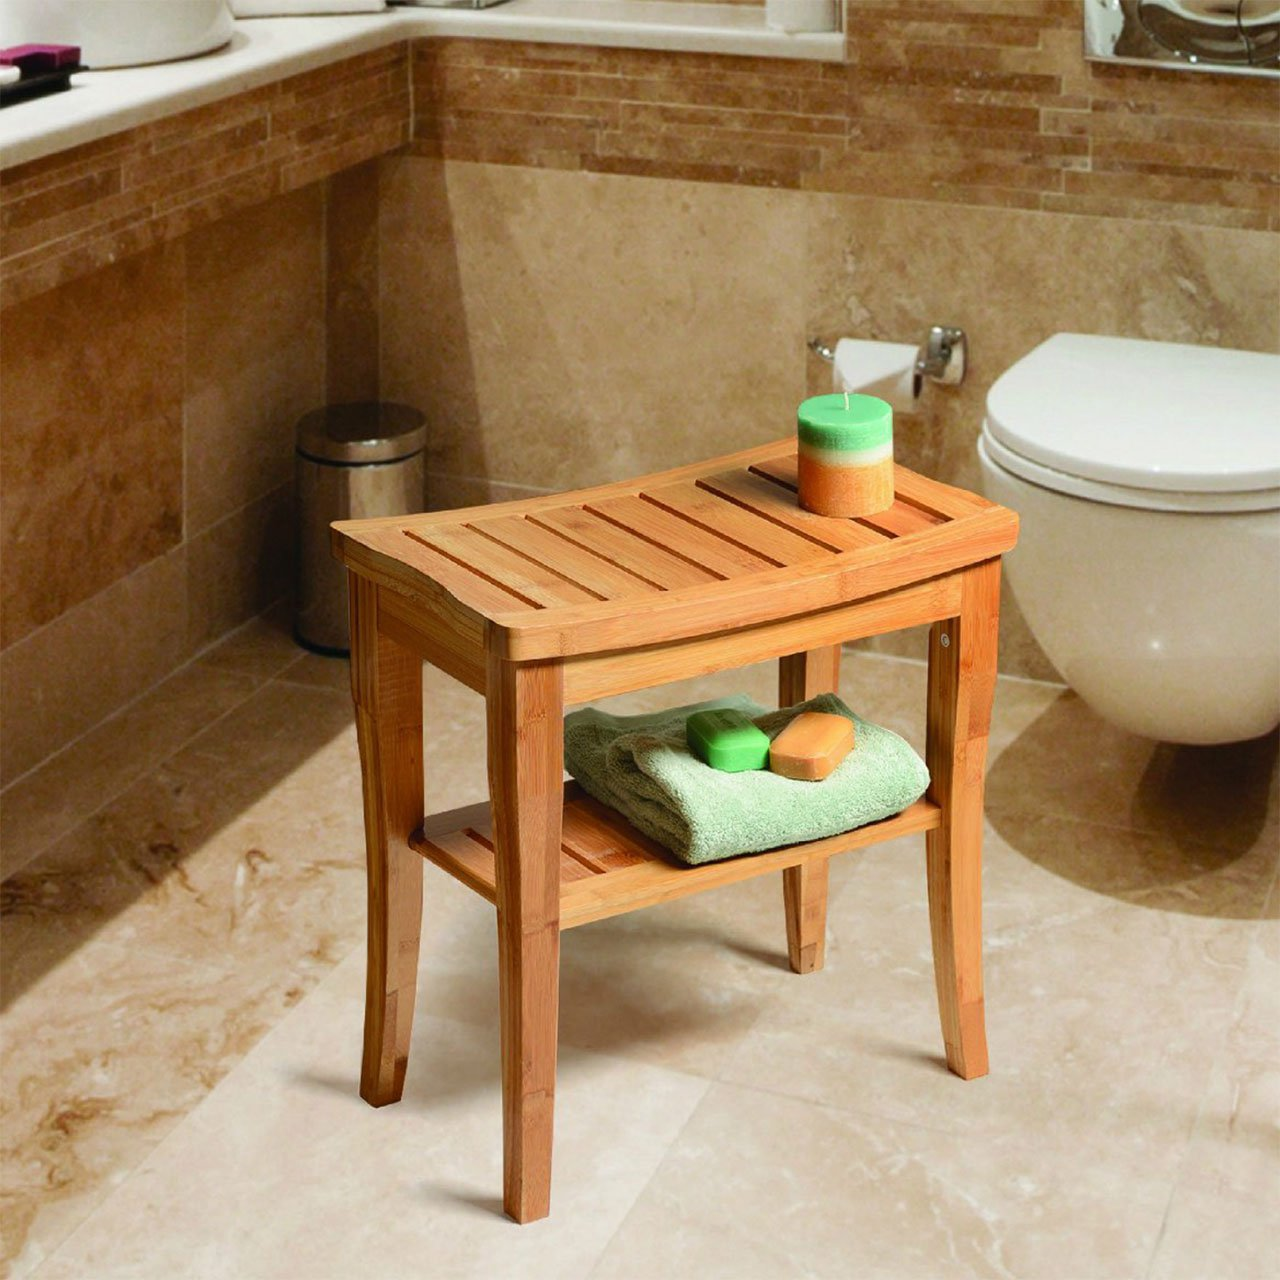 Water-friendly Bamboo Shower Bench with Storage Shelf